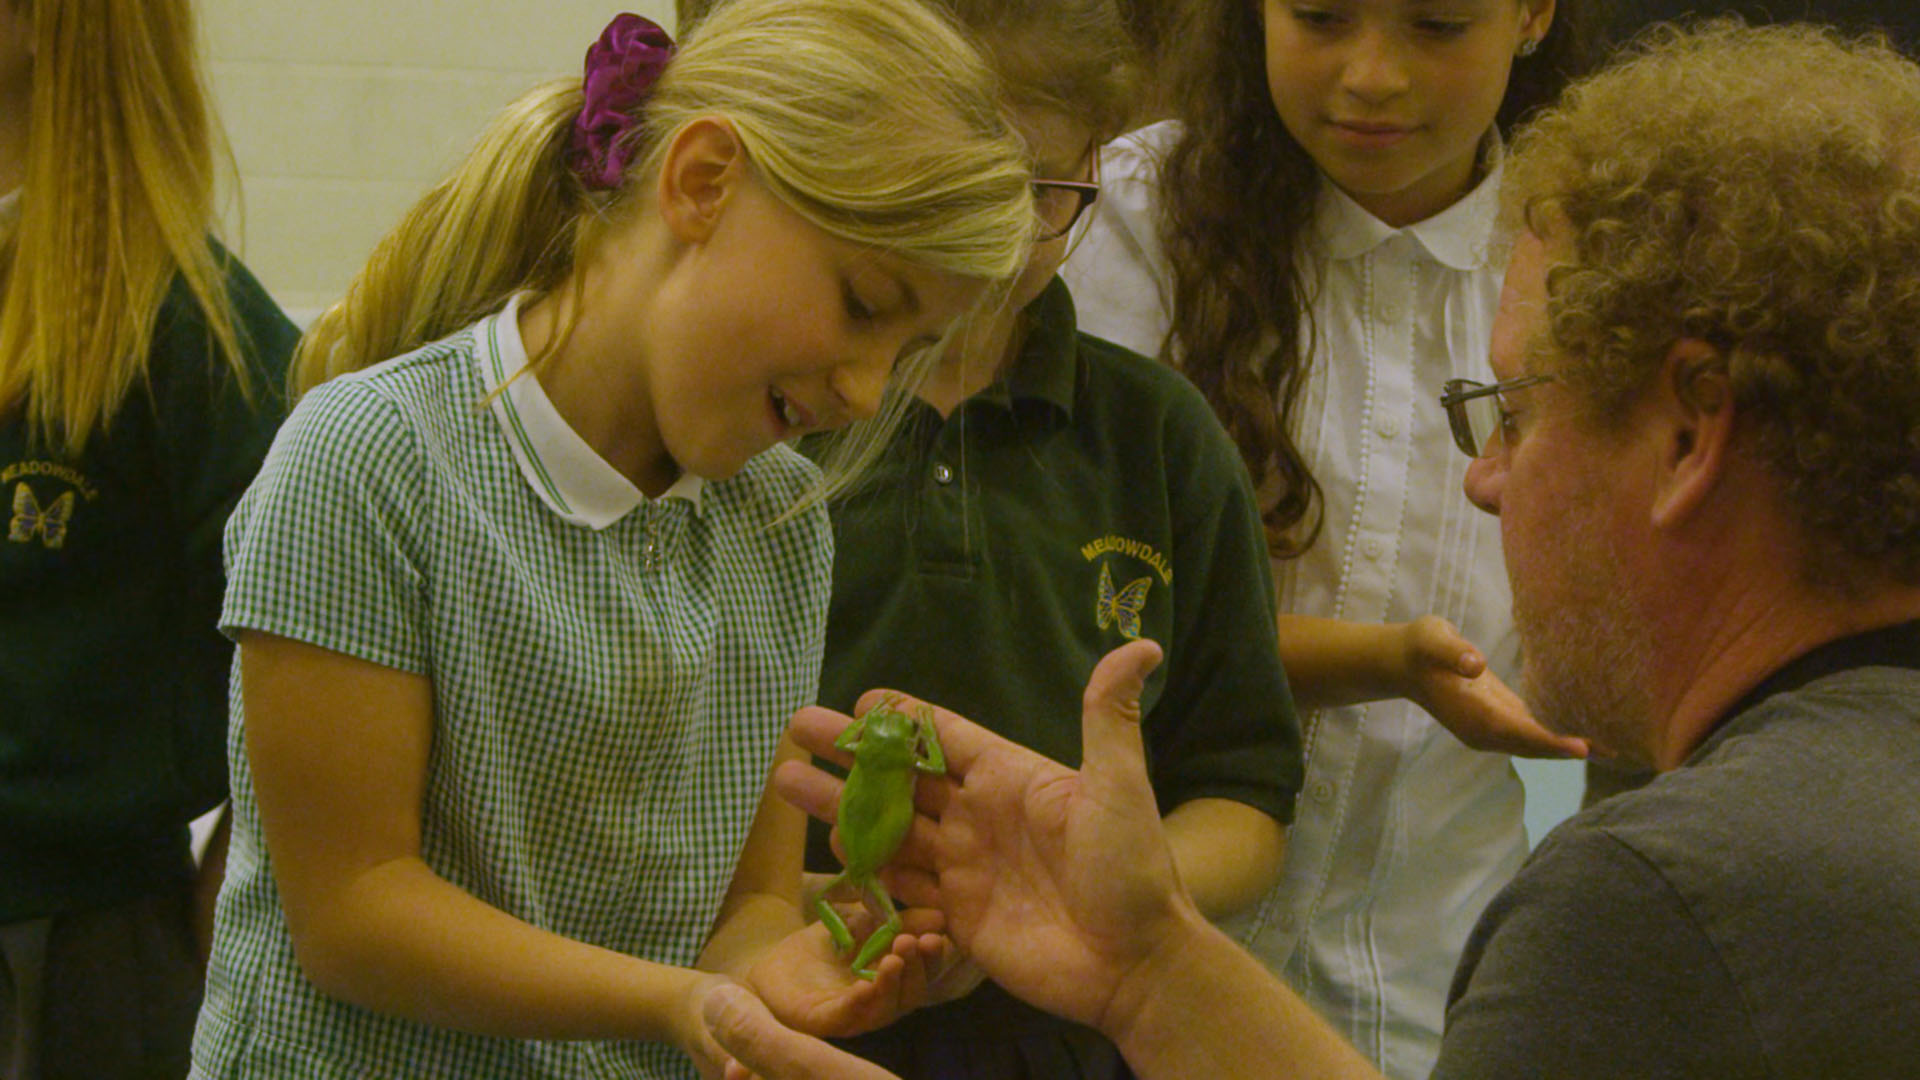 Teacher and pupil looking at a green frog